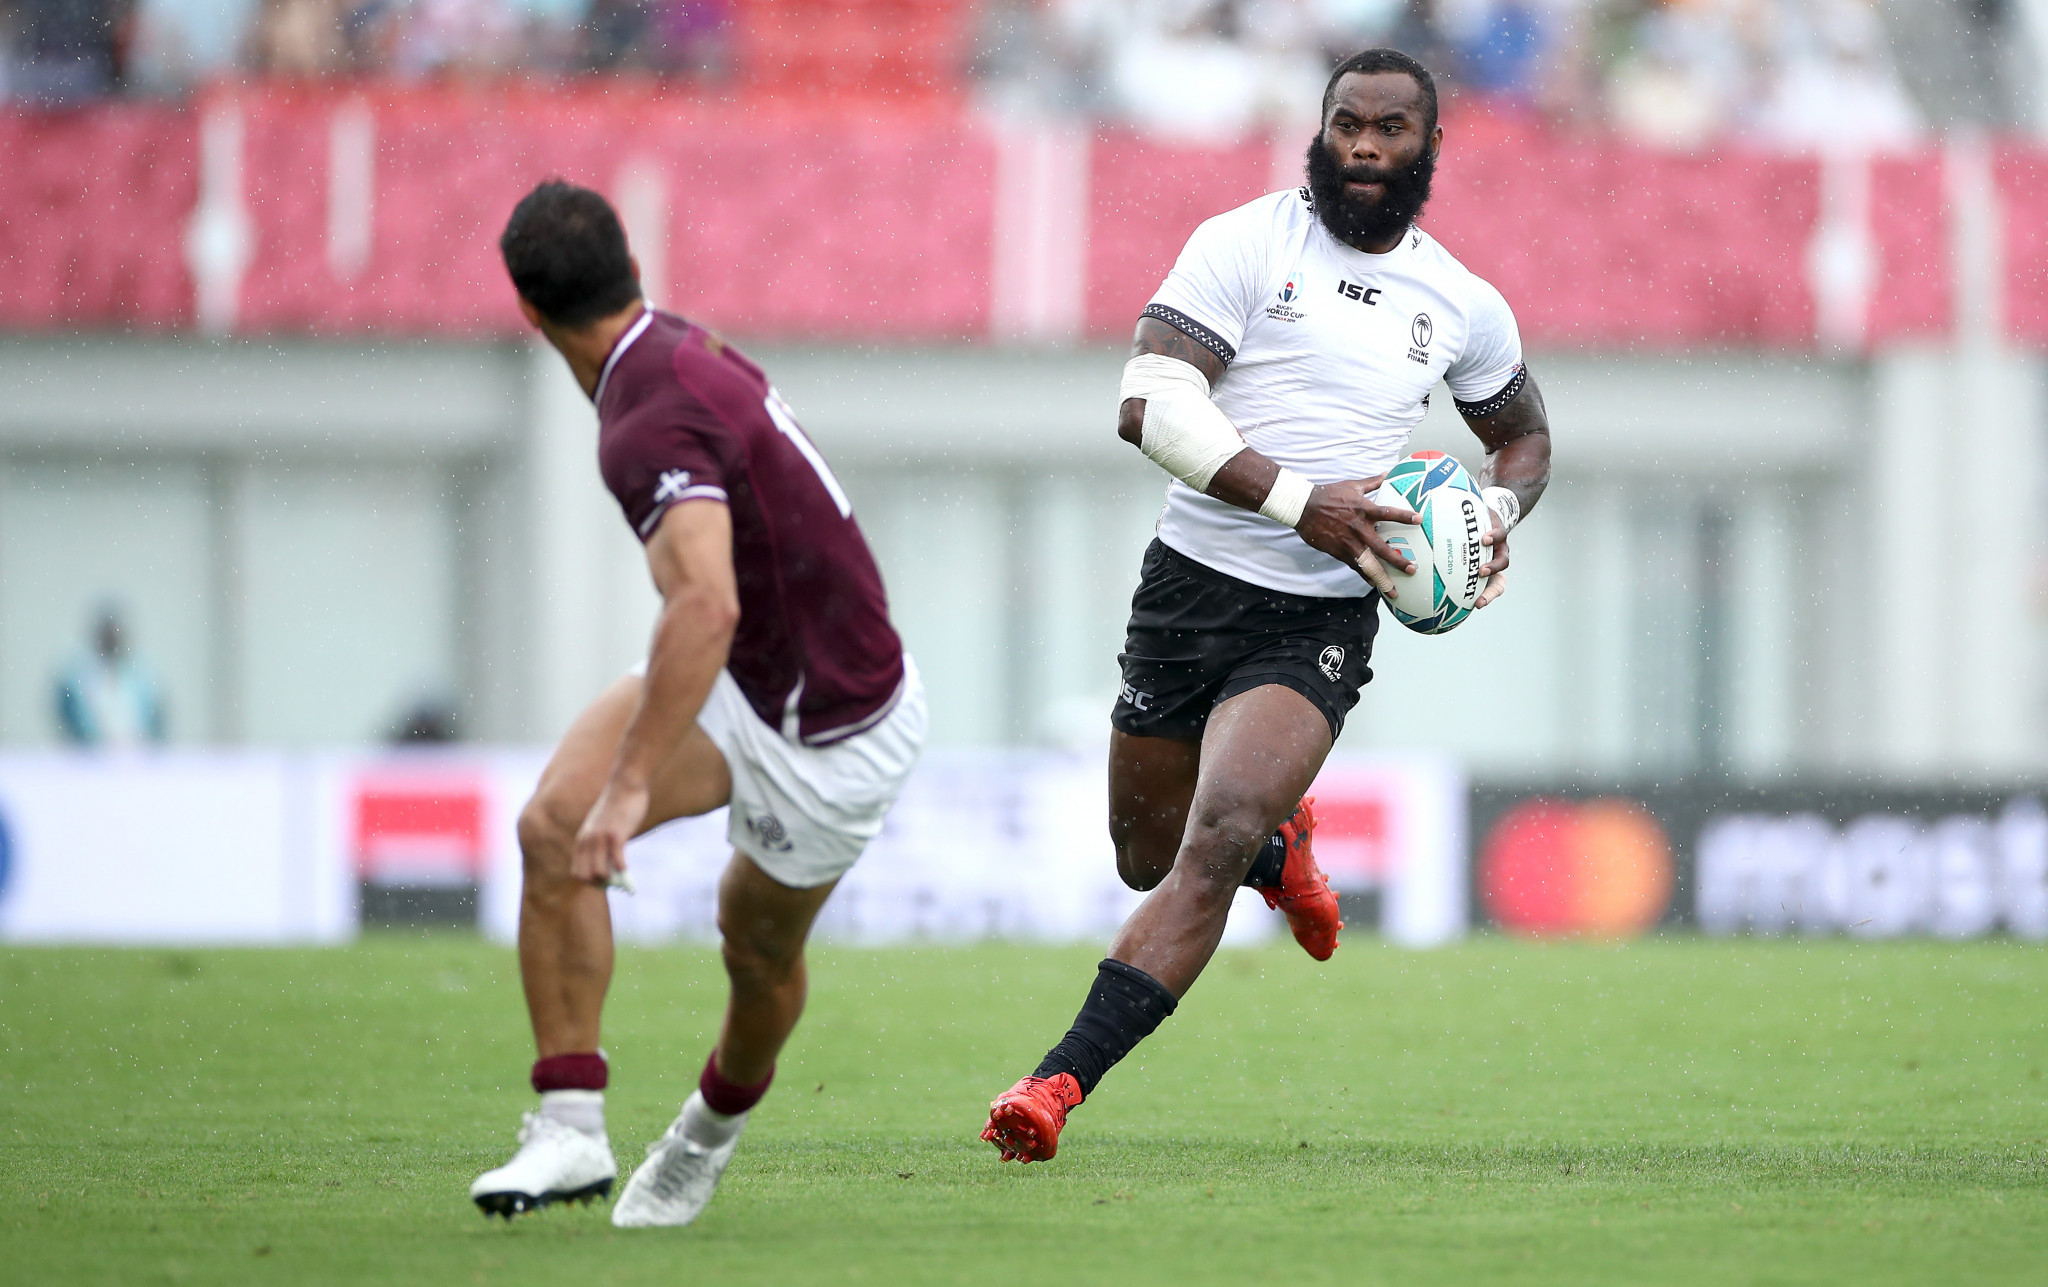 Fijian rugby sevens boss hopes to secure Radradra's services ahead of Tokyo 2020